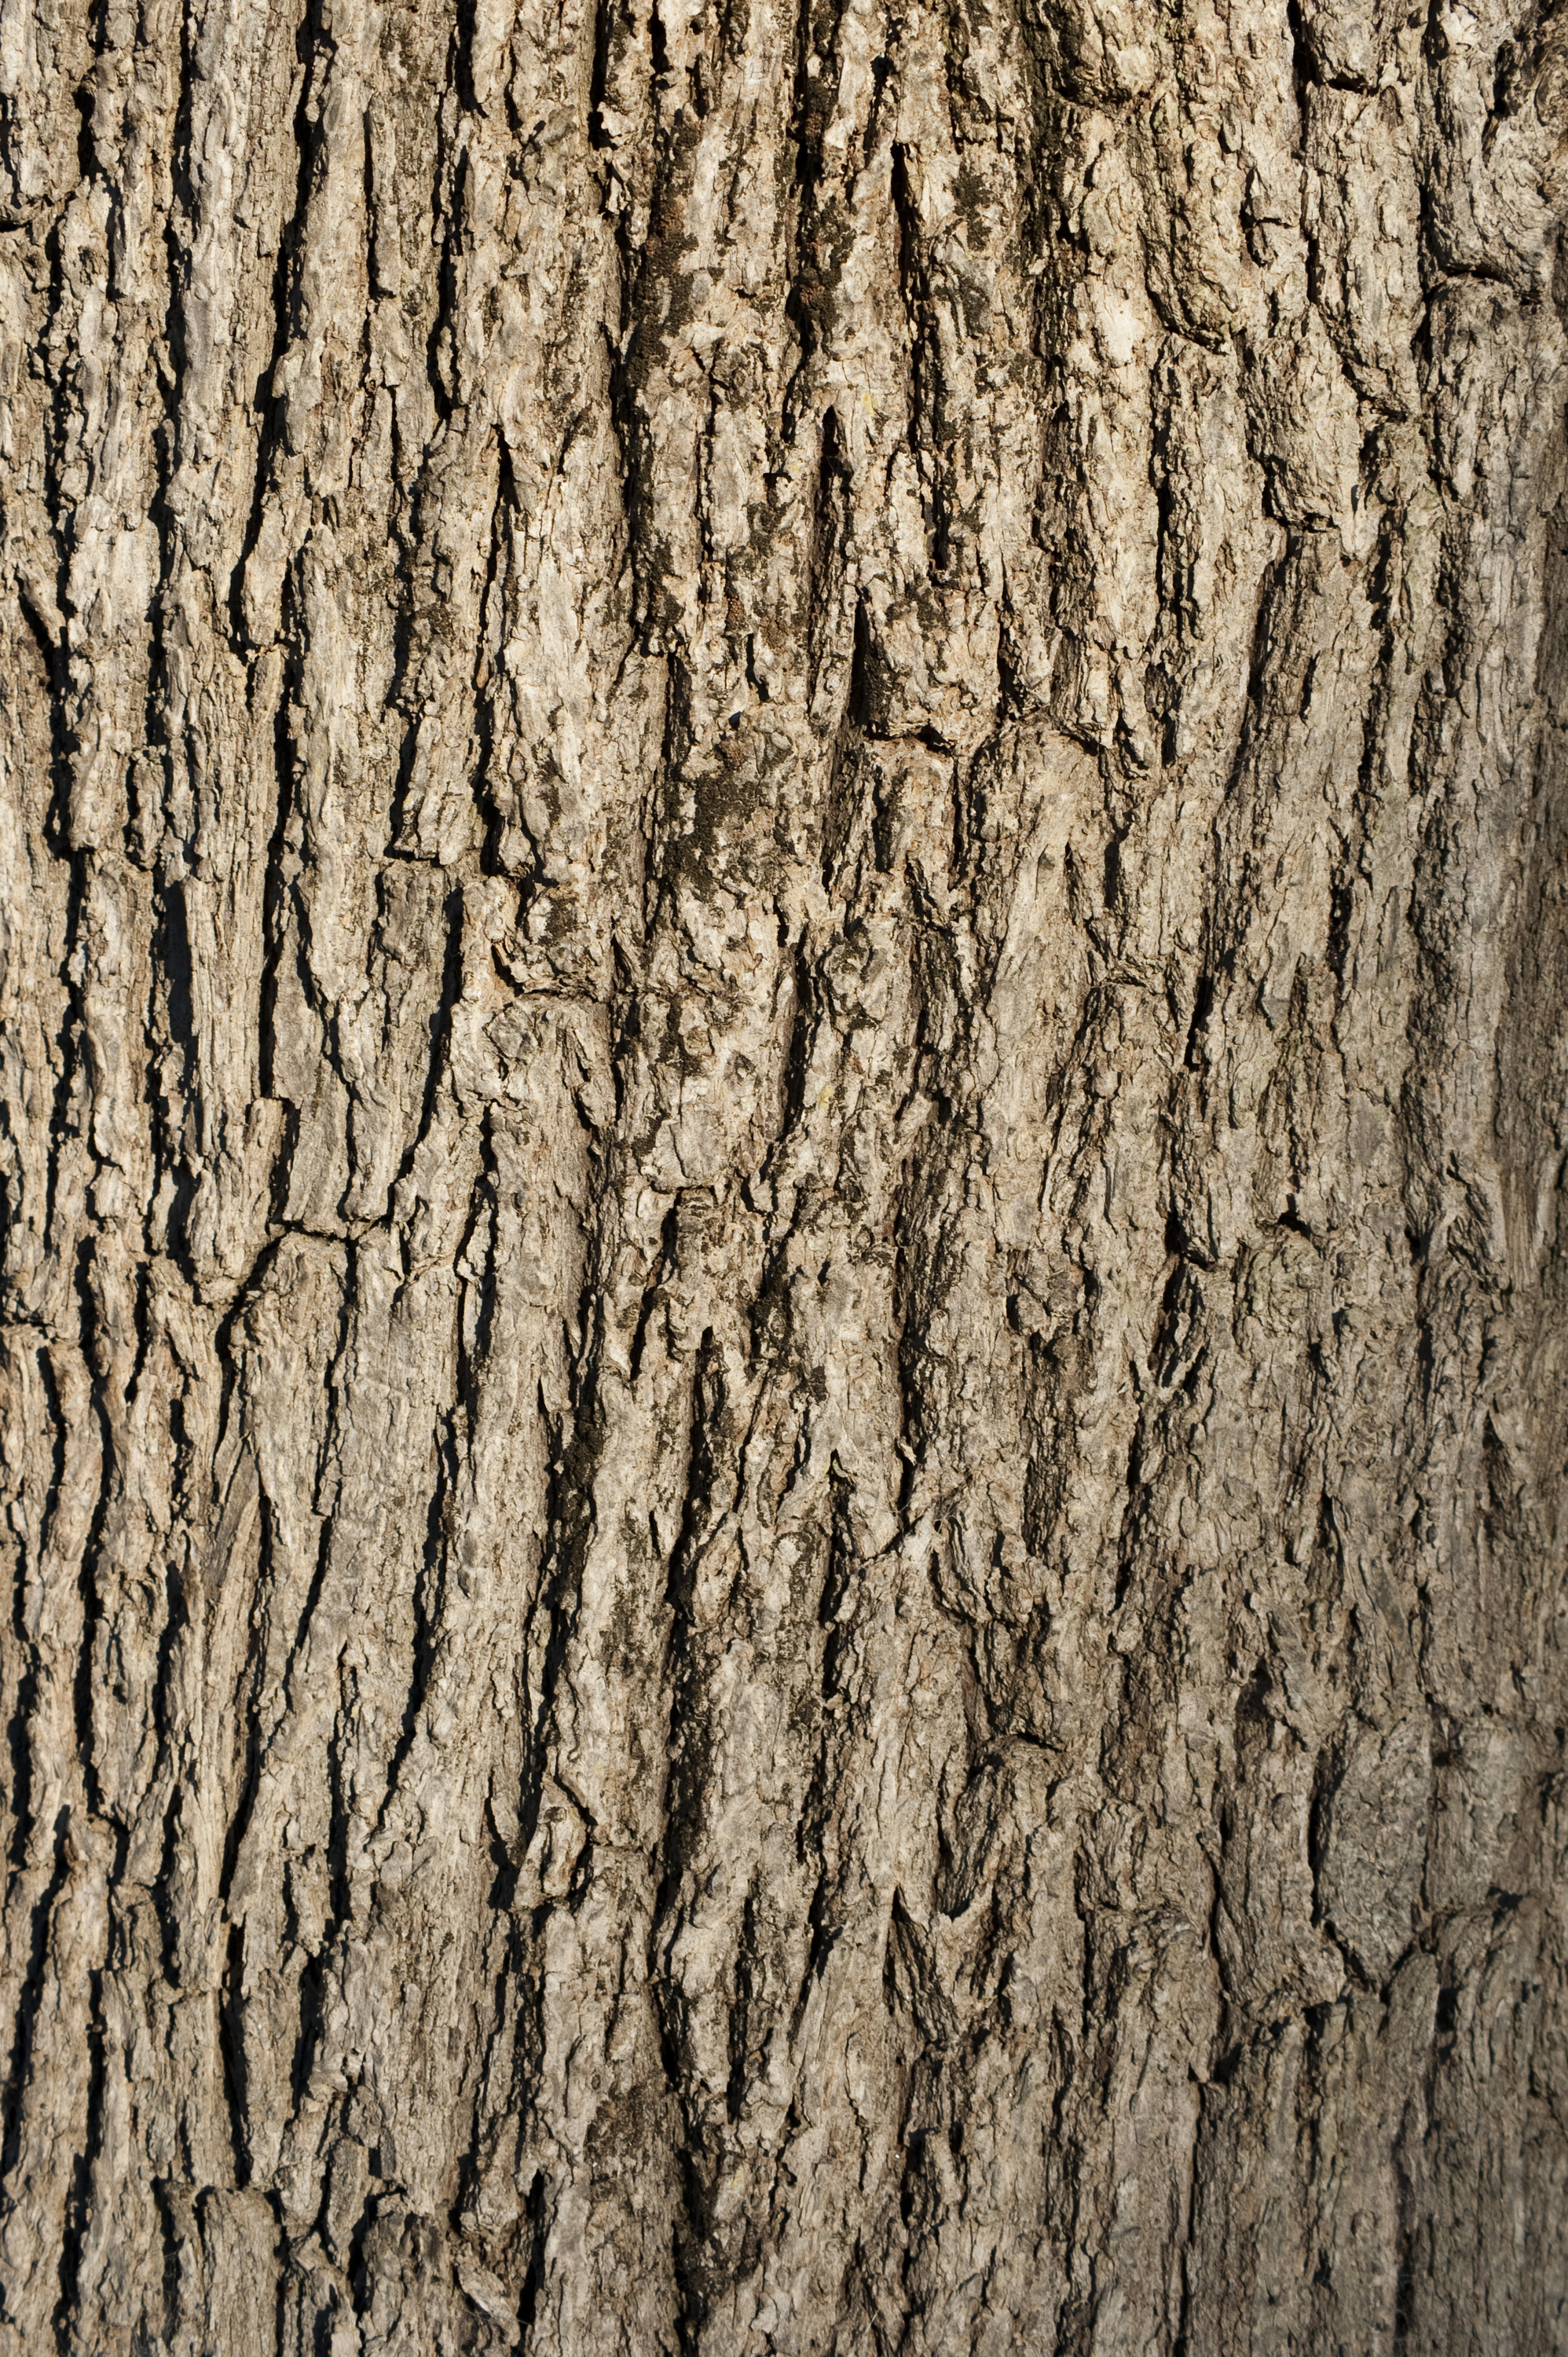 Free image of tree bark background